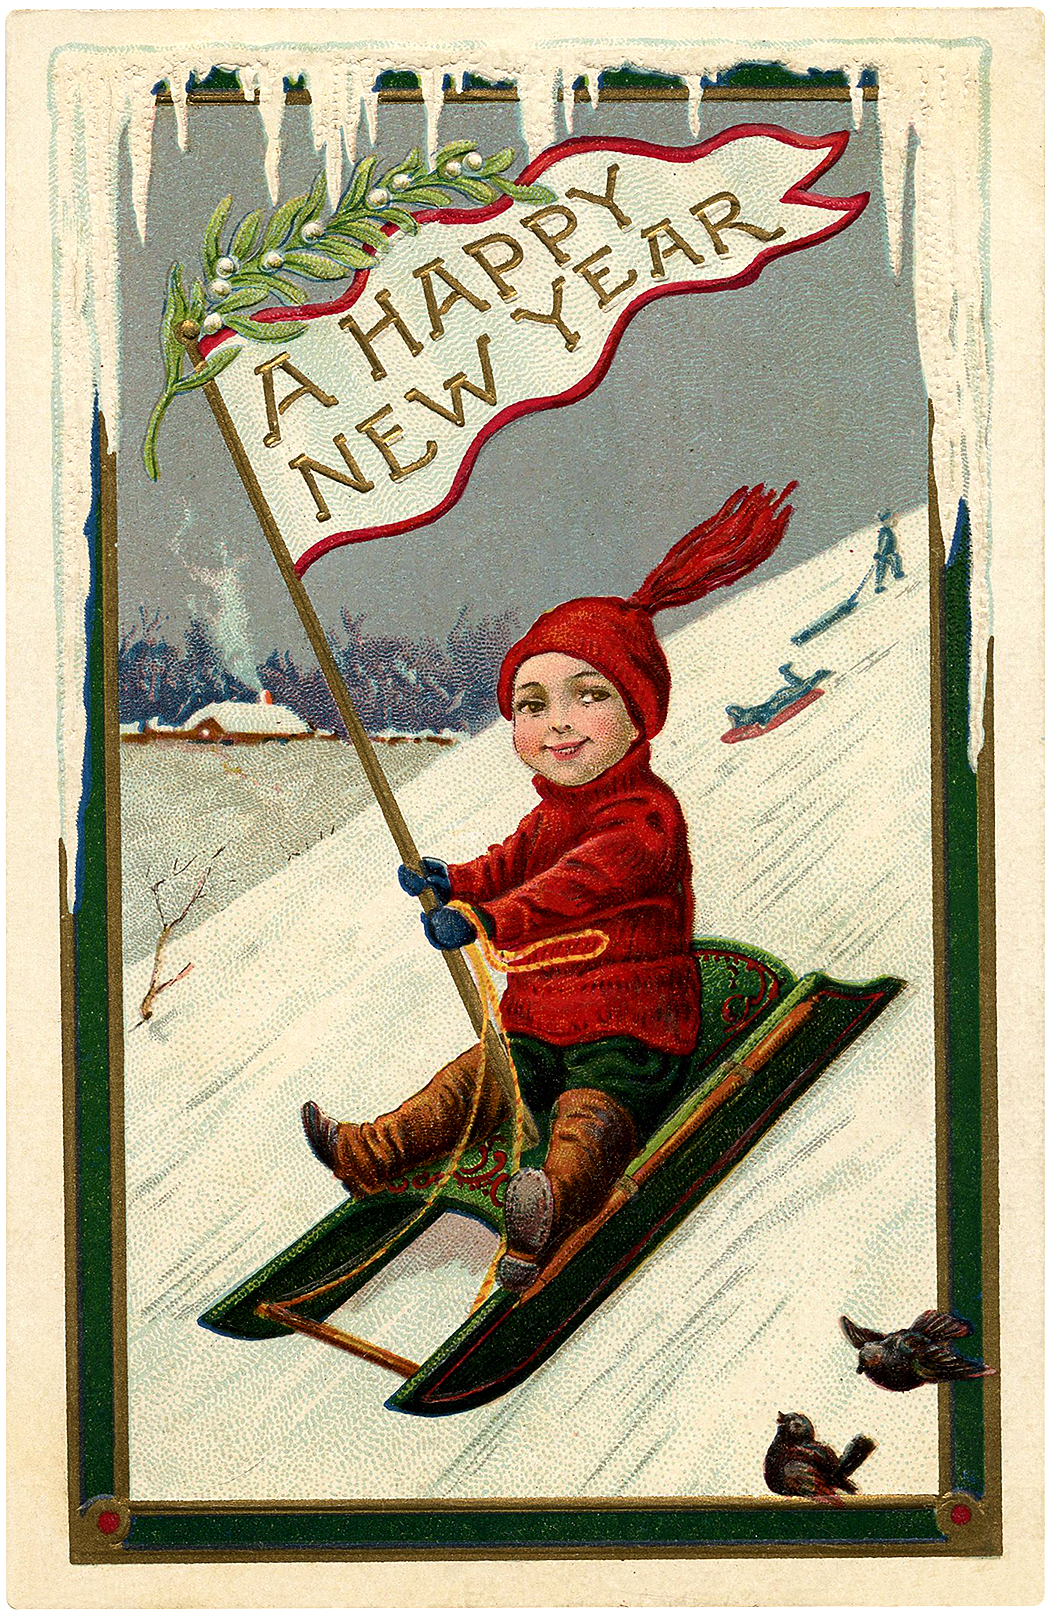 Cute Vintage New Year Sled Boy Image! - The Graphics Fairy